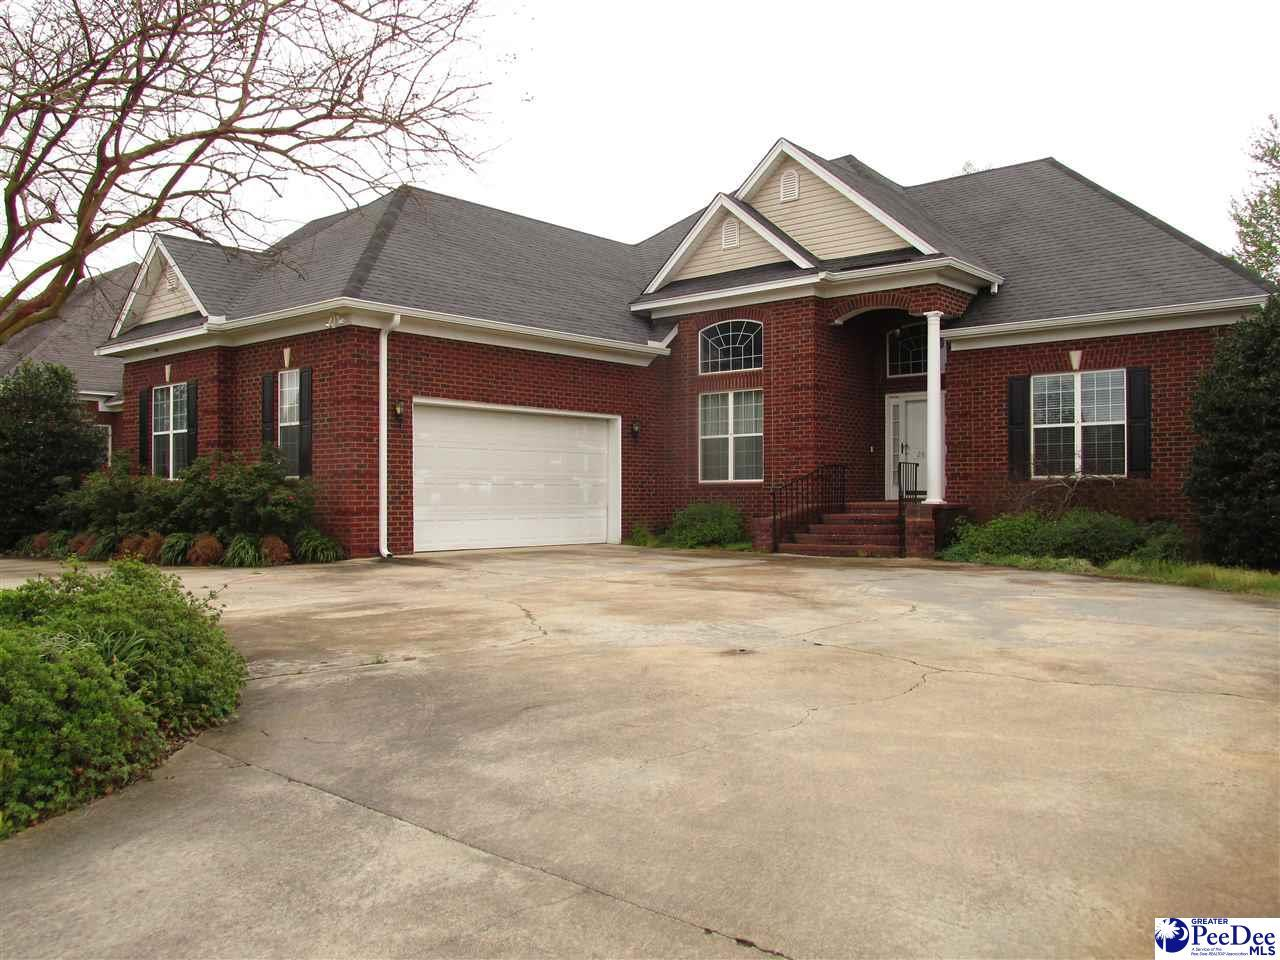 2810 Shadwell Court Florence Sc Mls 125412 Florence